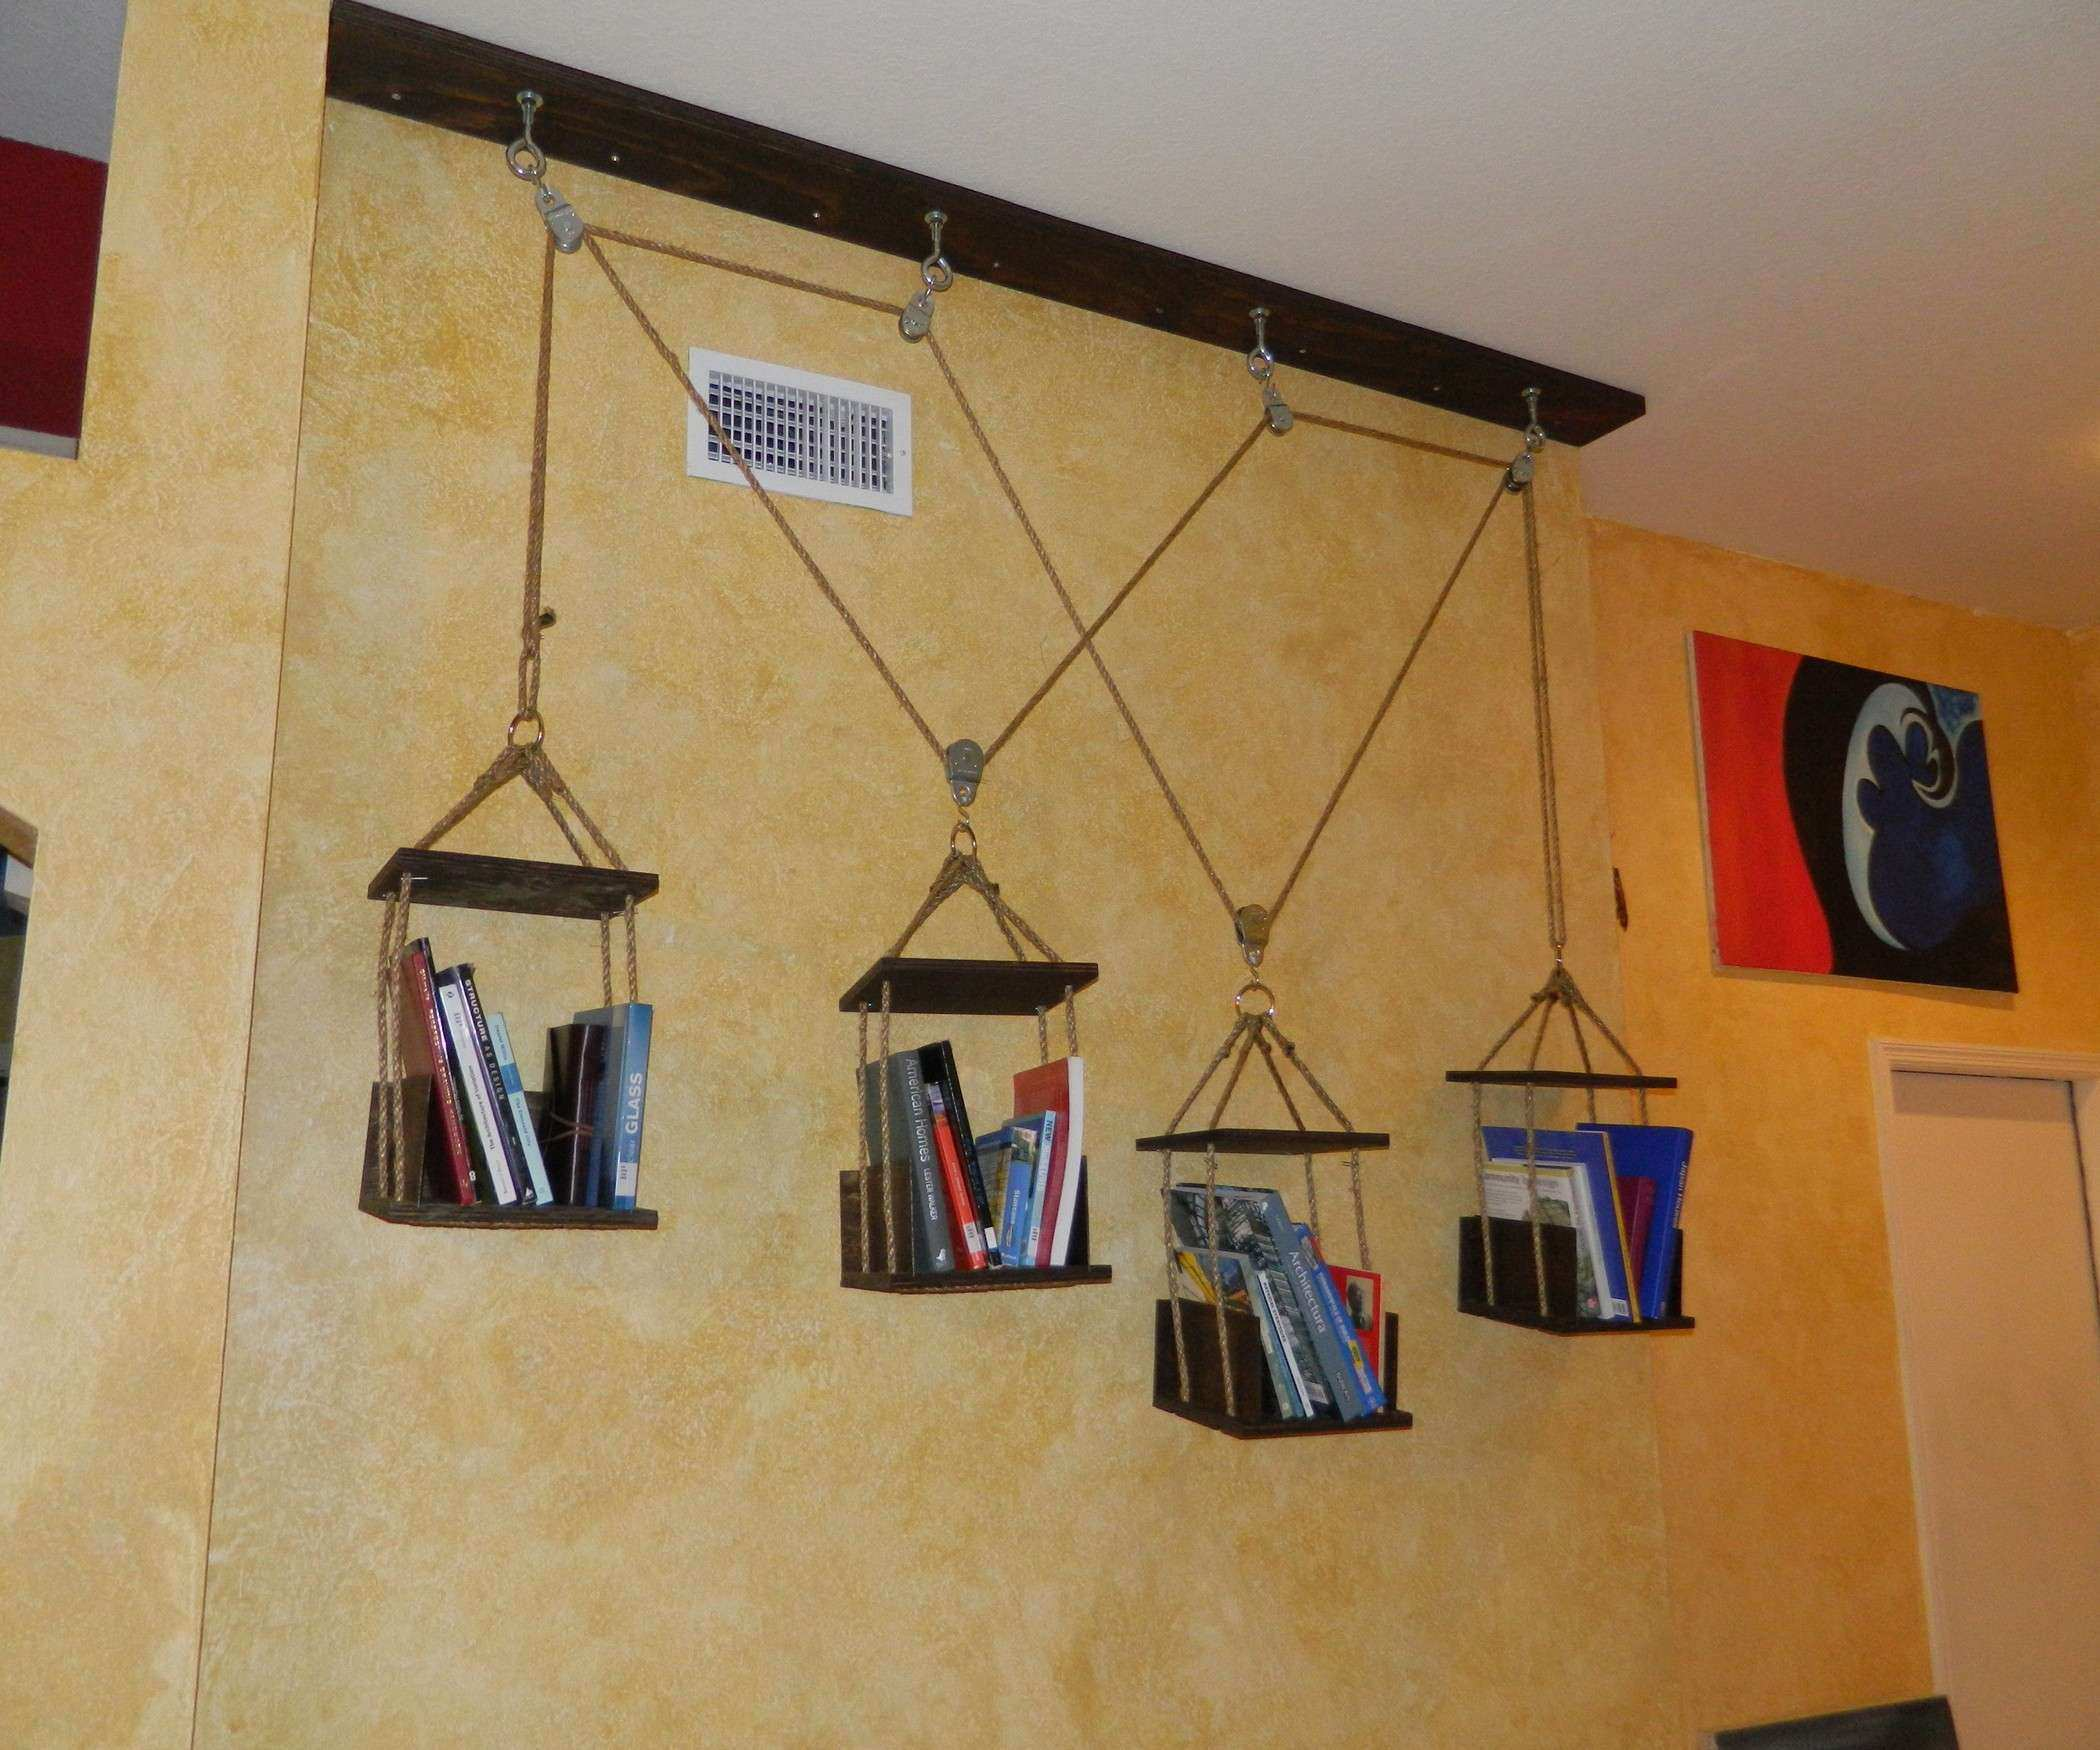 Hanging Pictures On Plaster Walls Elegant Amazing Hanging Book Shelves From Ceiling Design Ideas